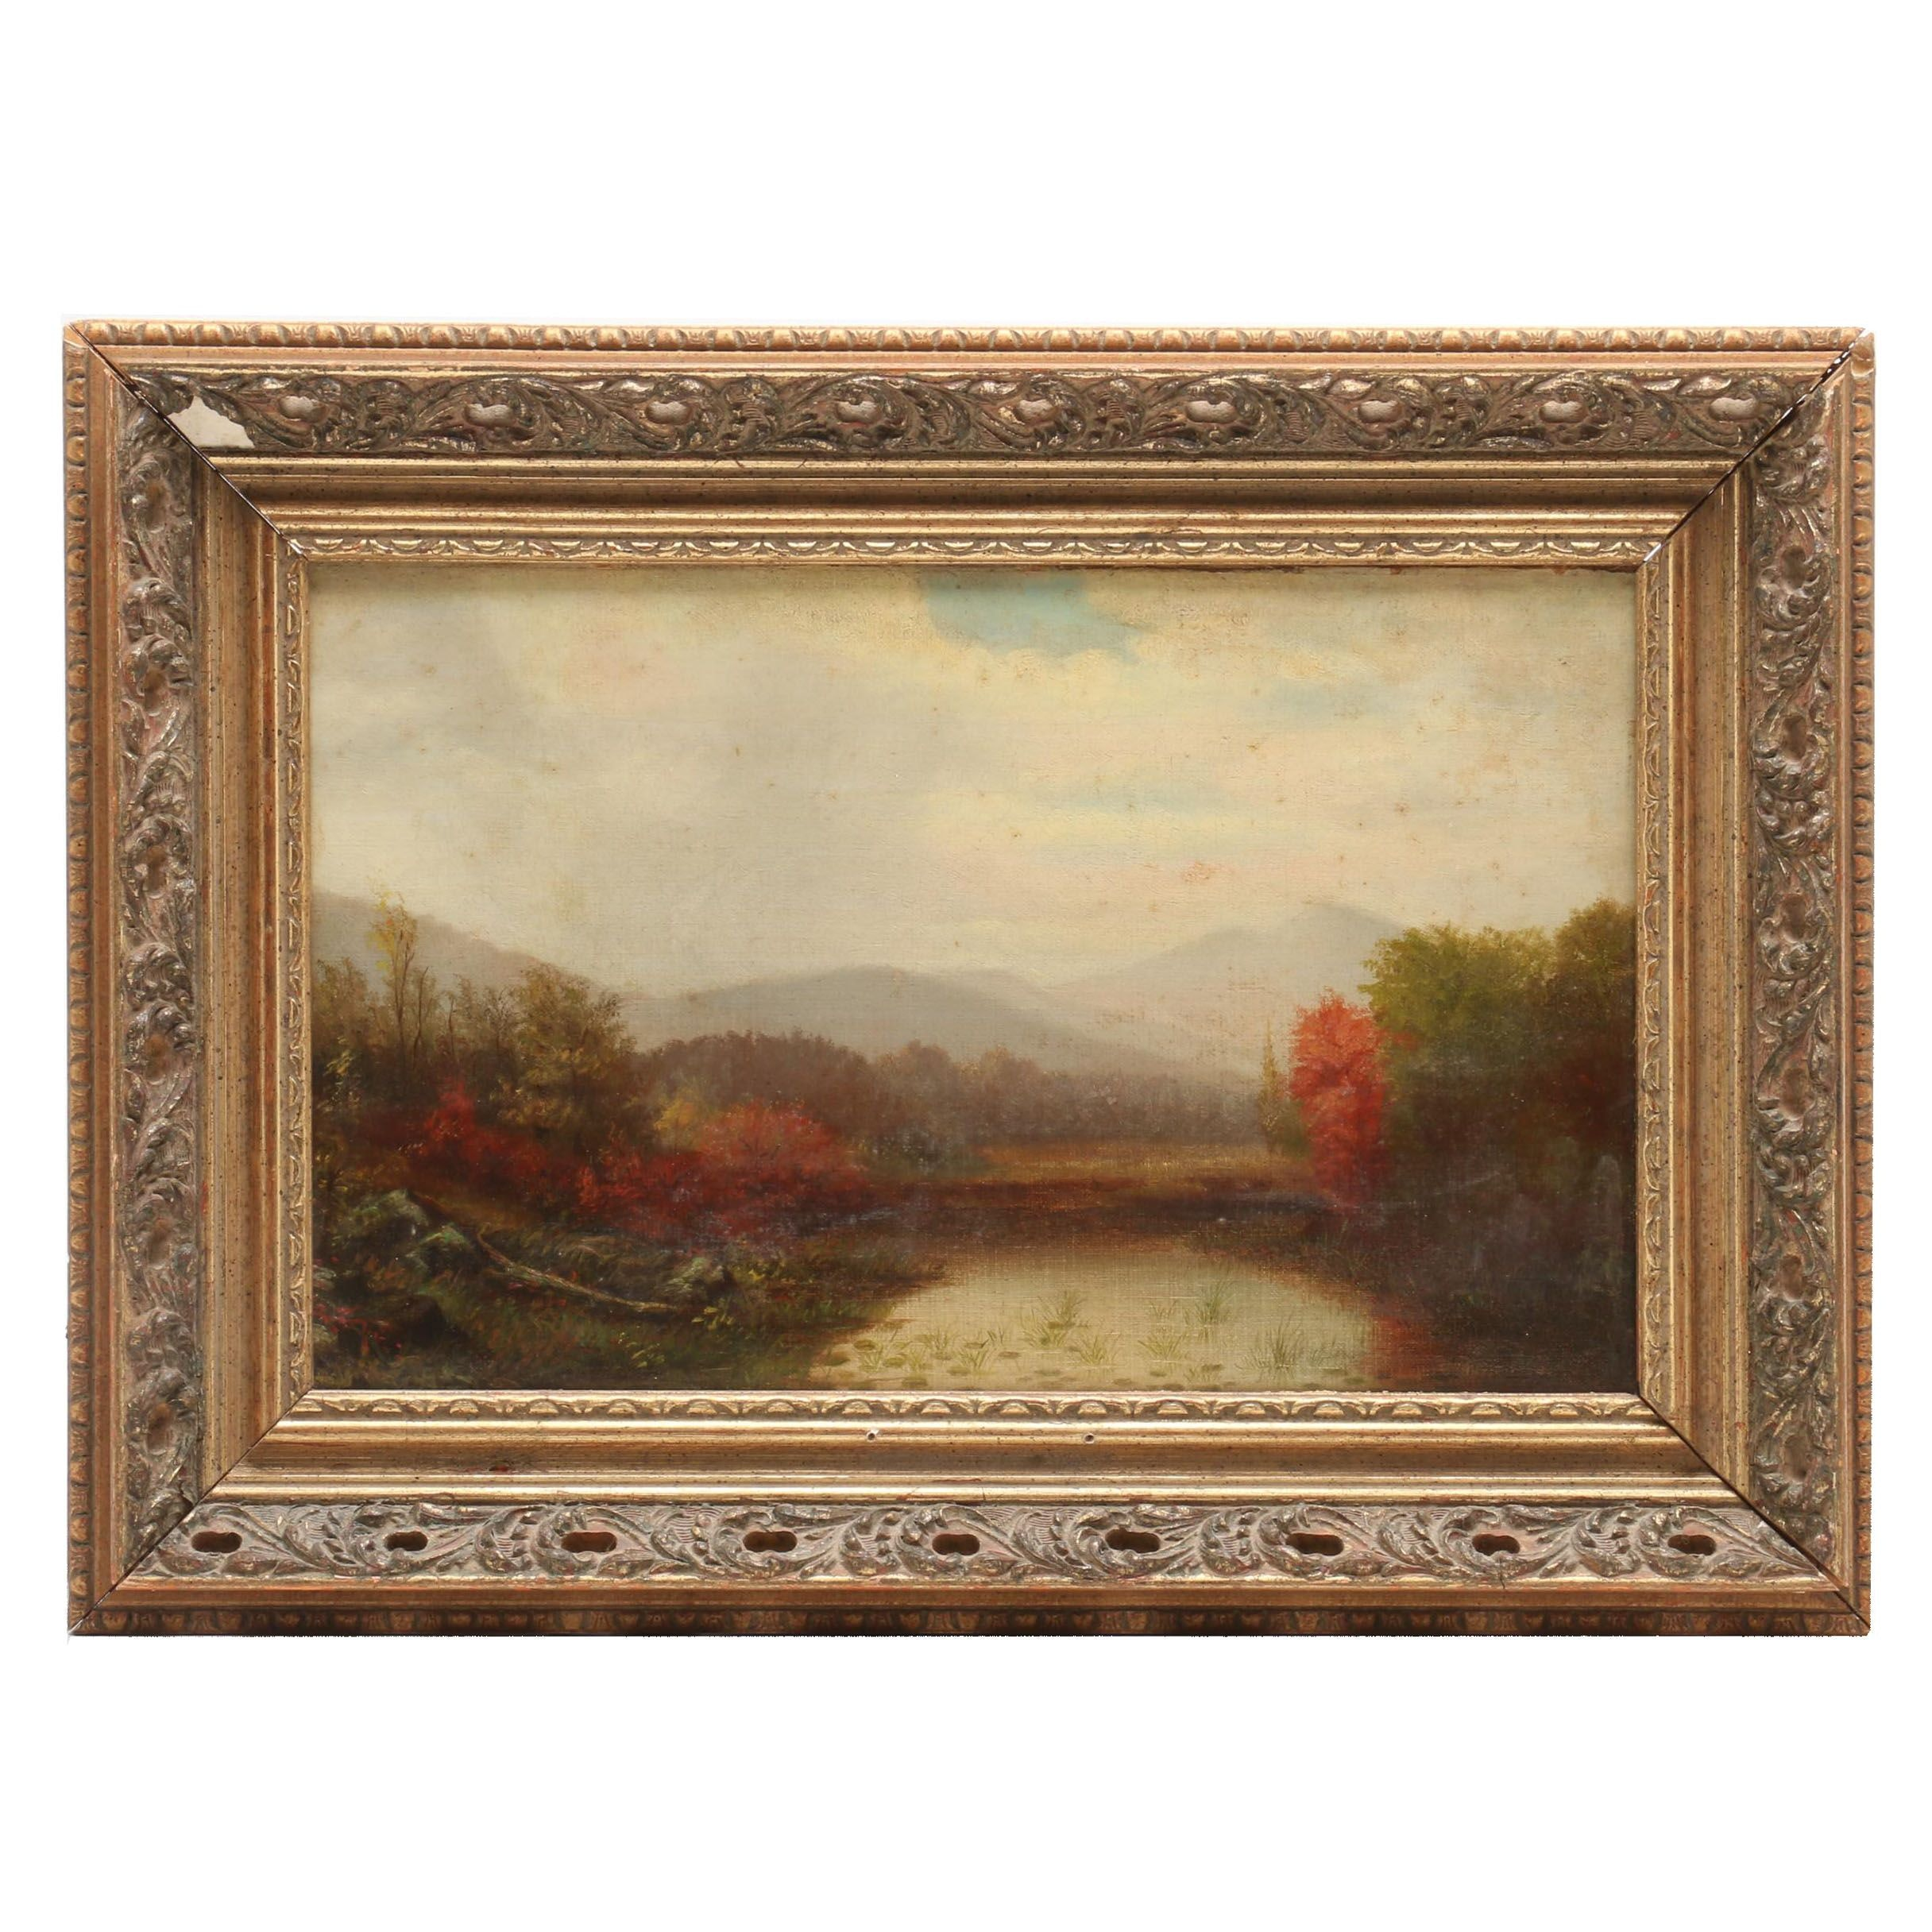 Hudson River School Style Landscape Oil Painting